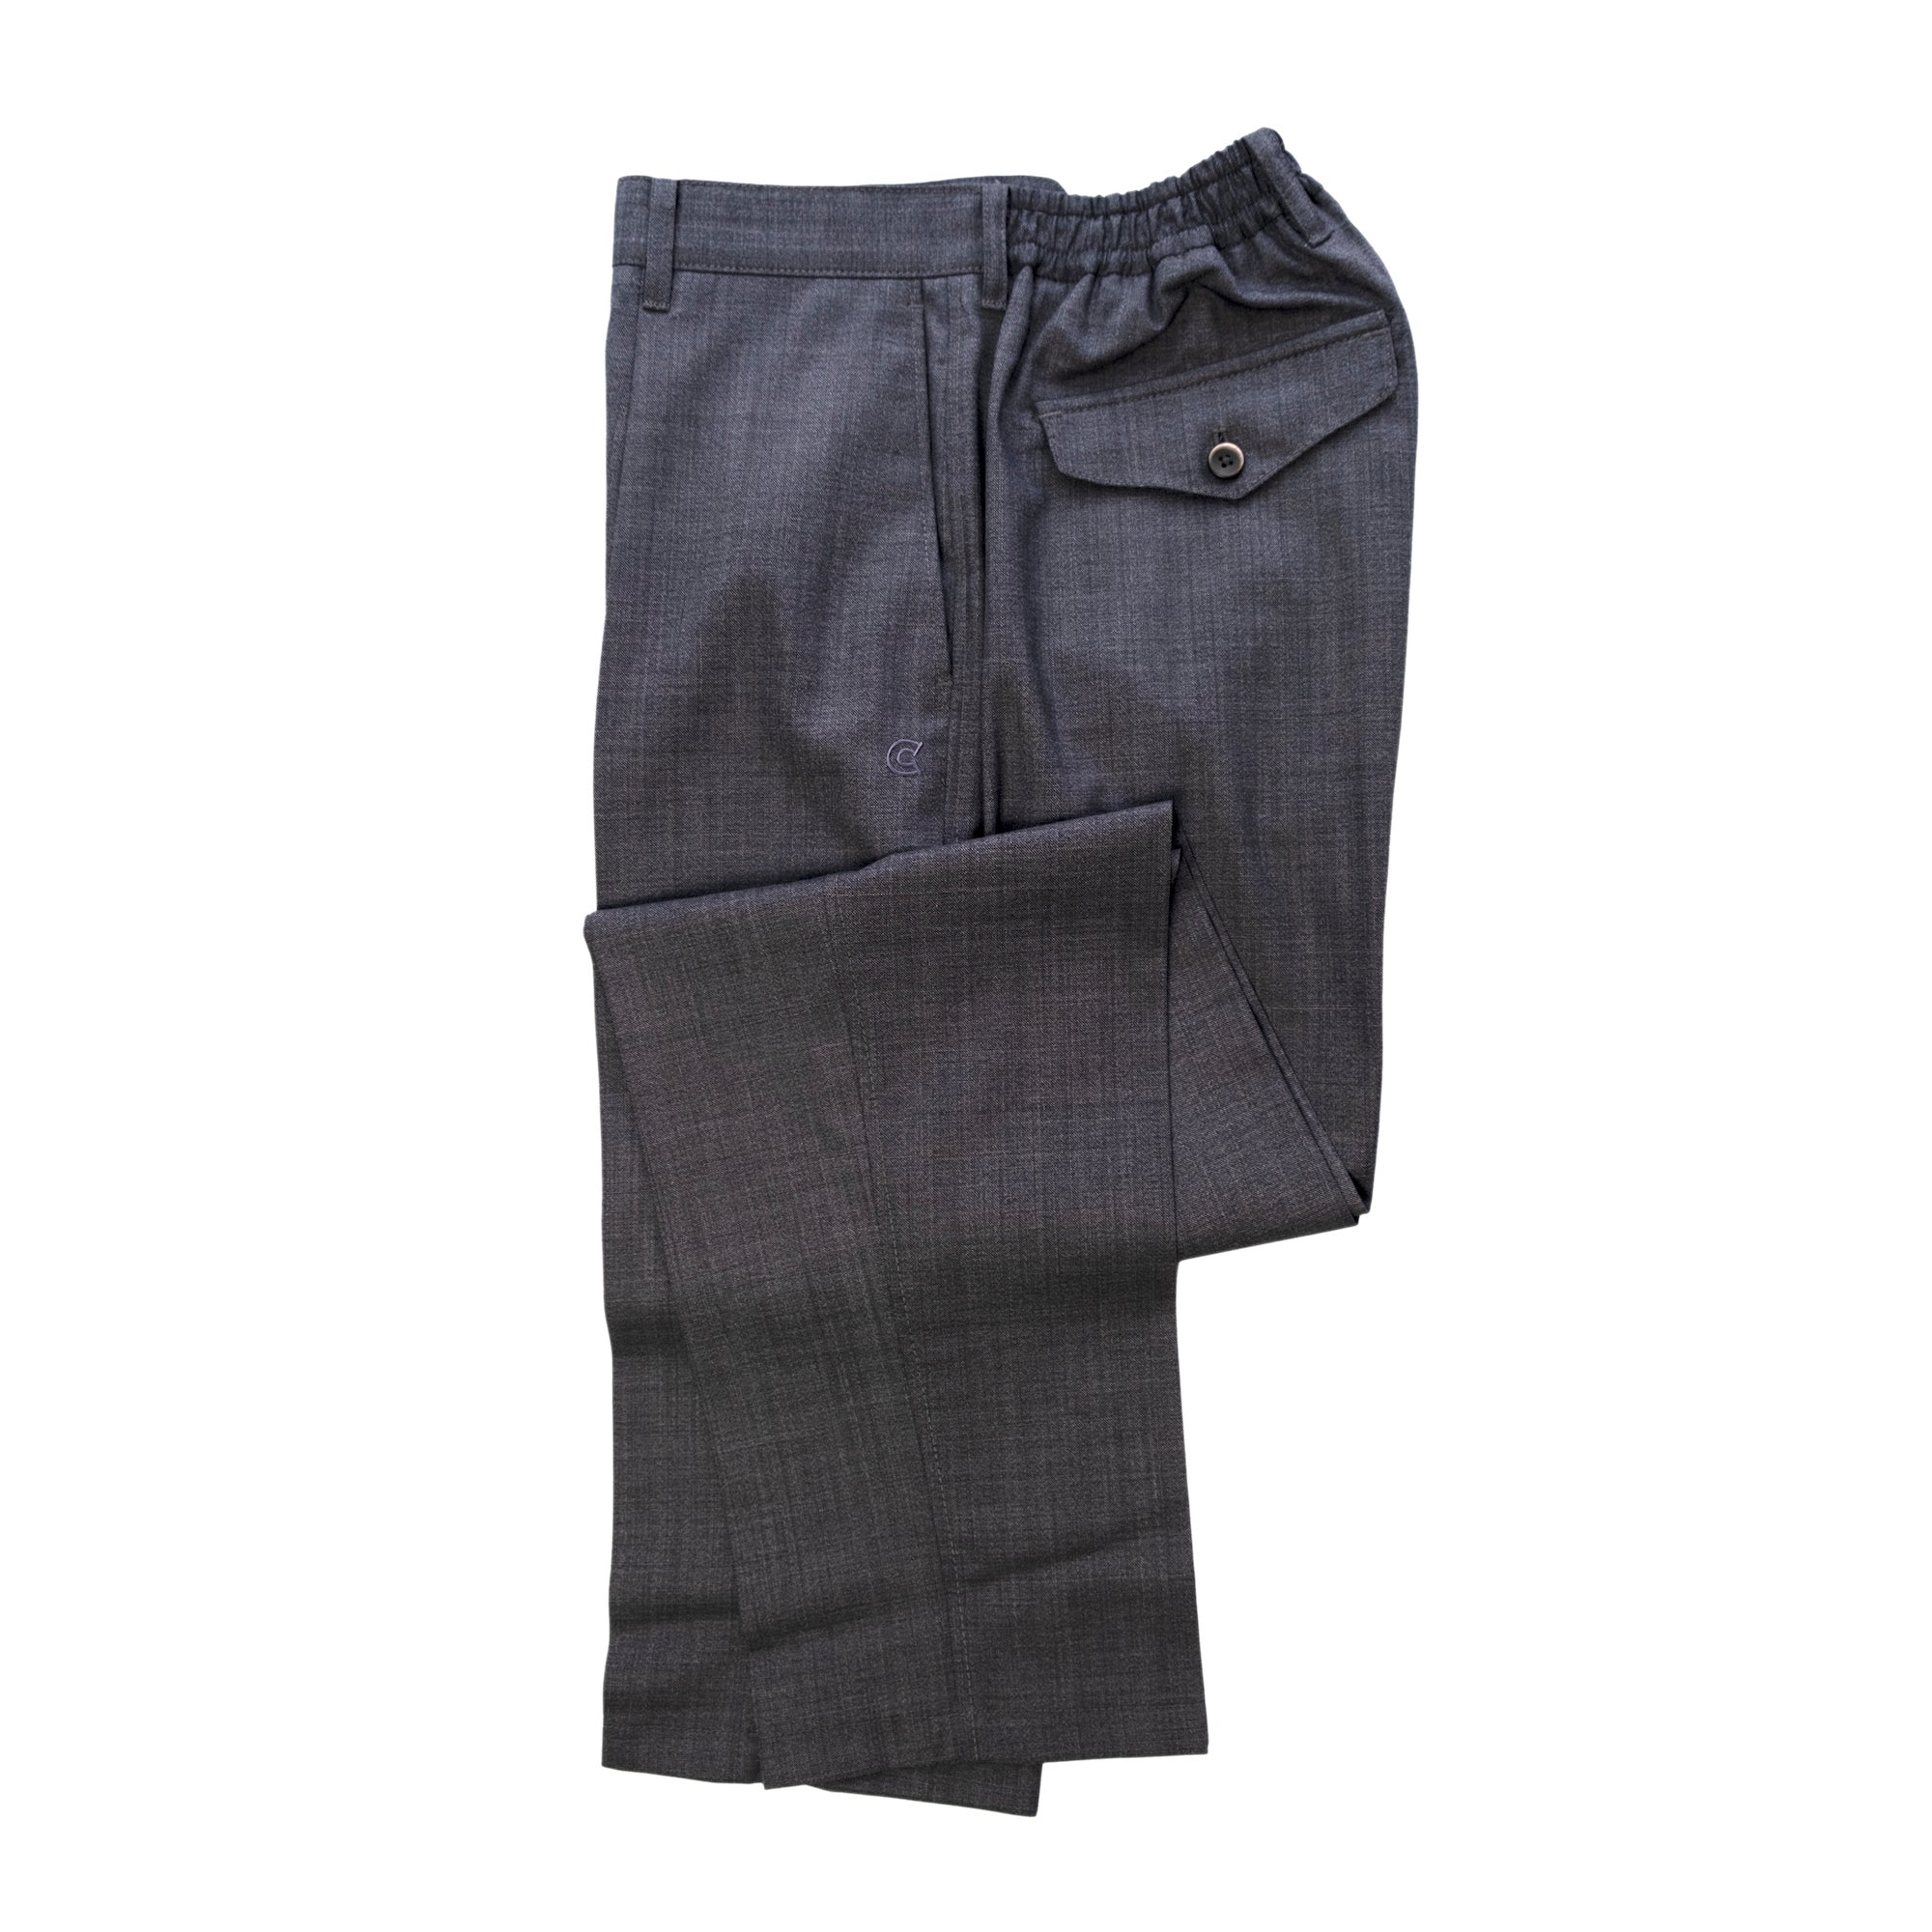 COLONY CLOTHING / ONE PLEAT TROUSERS SHARK SKIN  / CC21-PT01-1